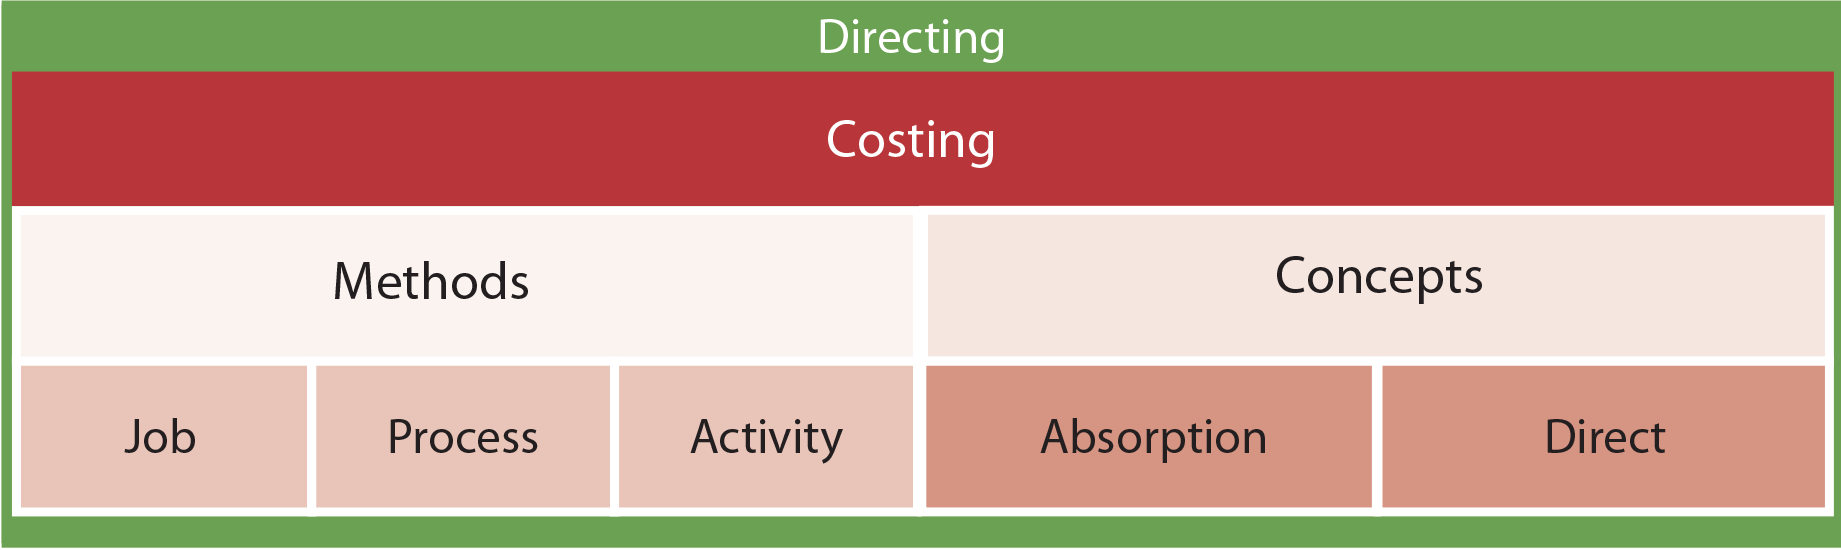 Managerial Accounting Functions - Costing chart